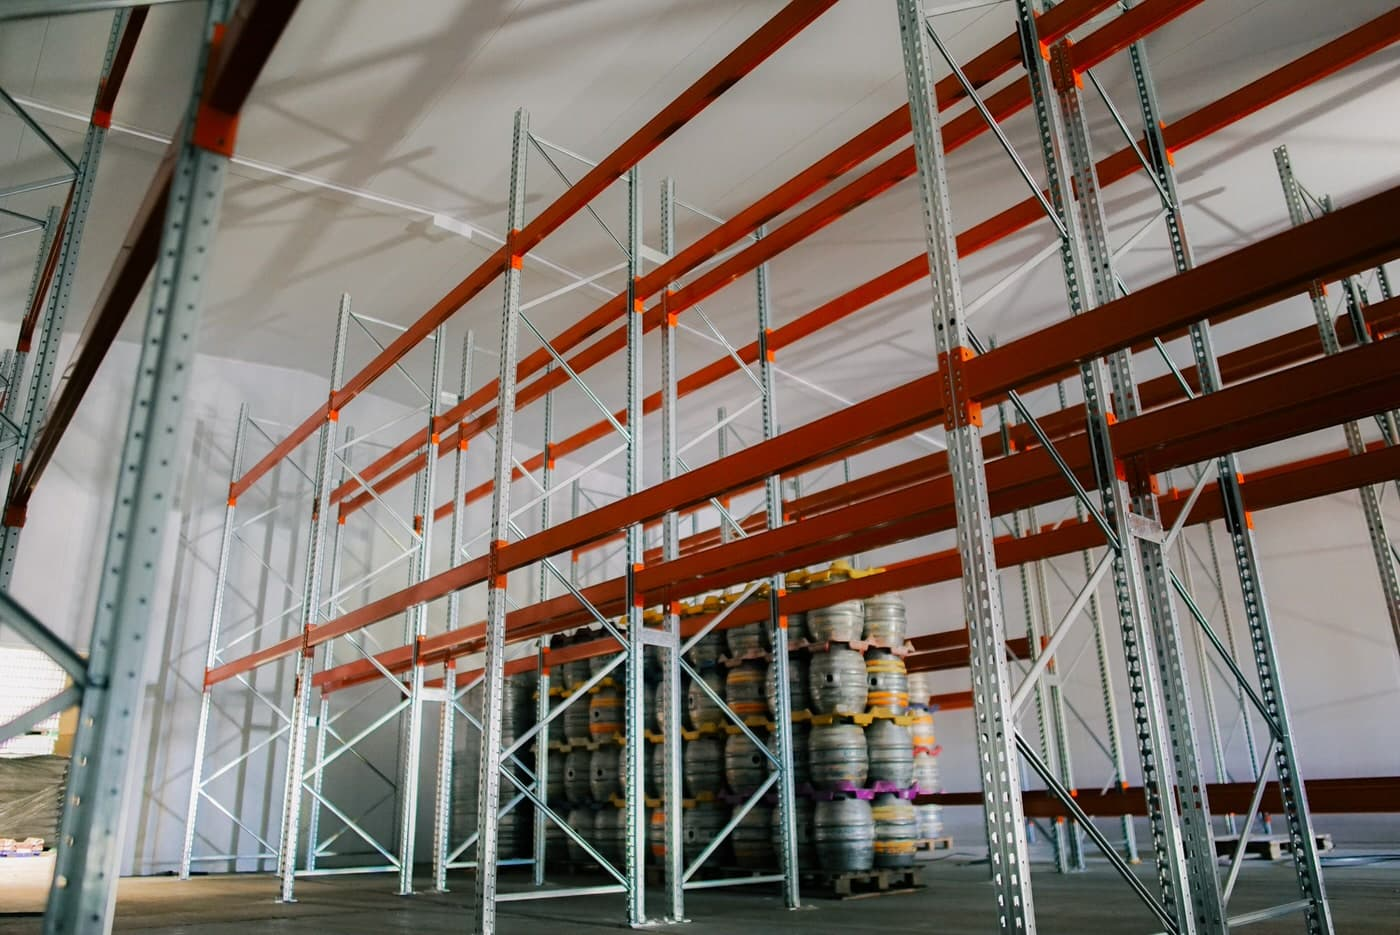 Pallet Racking Within a Chilled Storage Facility for Expanding Craft Brewing Company